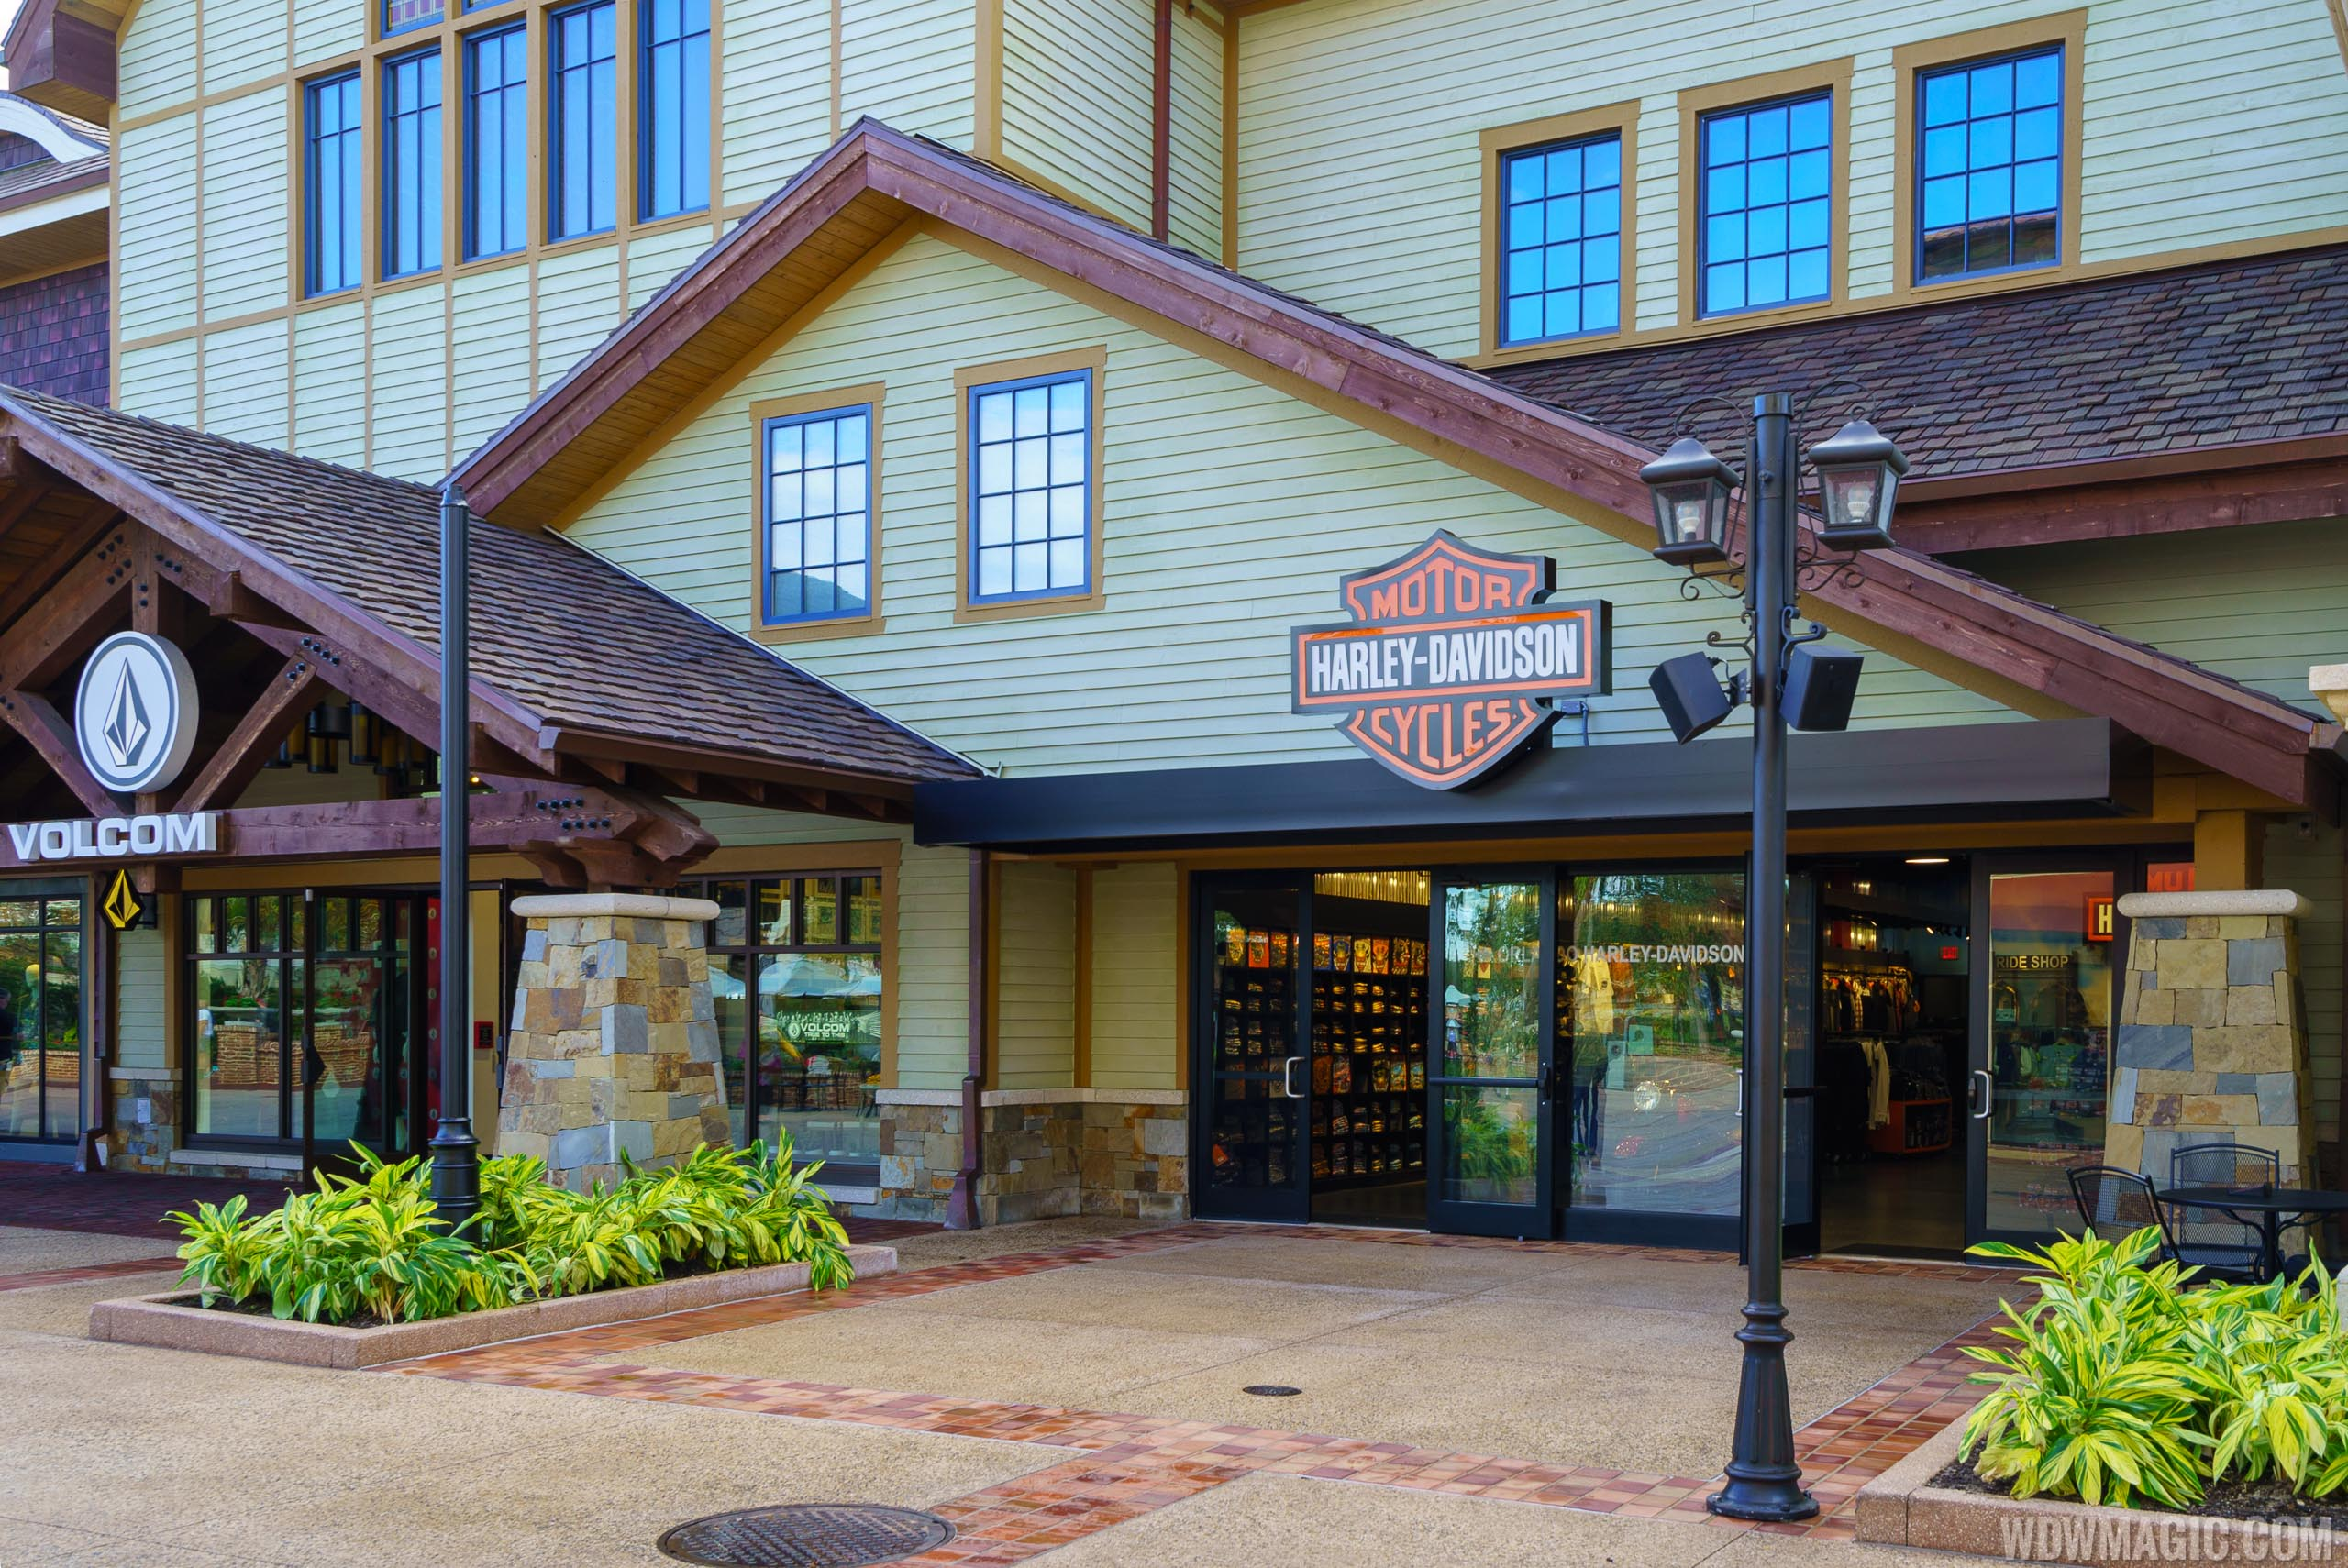 Harley Davidson Motor Cycles Store Moving To The Town Center At